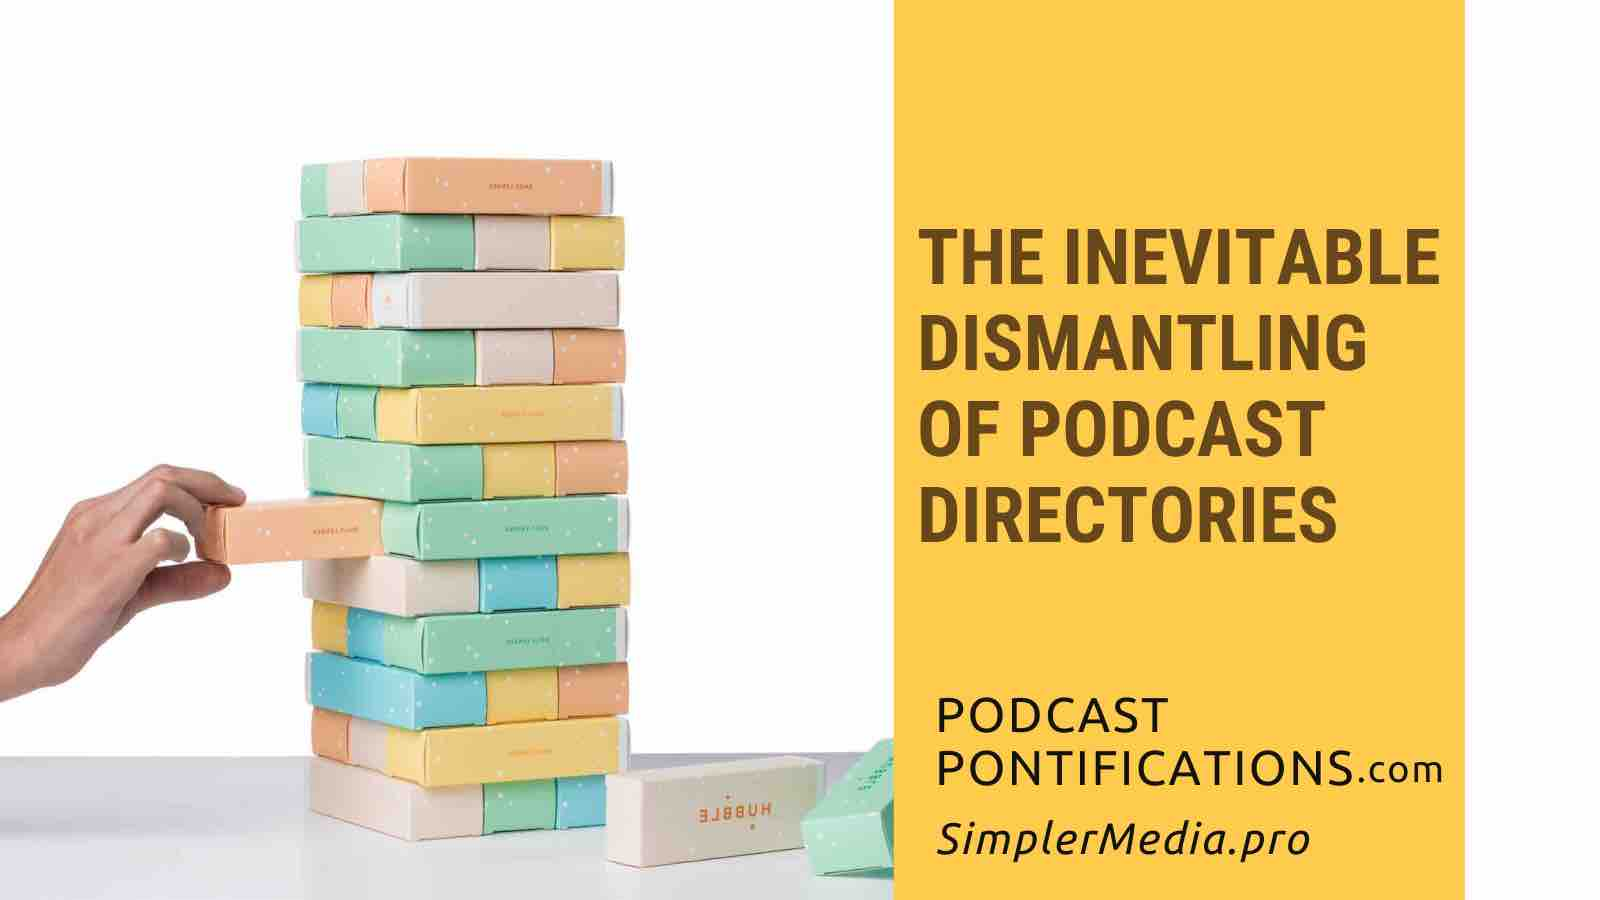 The Inevitable Dismantling Of Podcast Directories